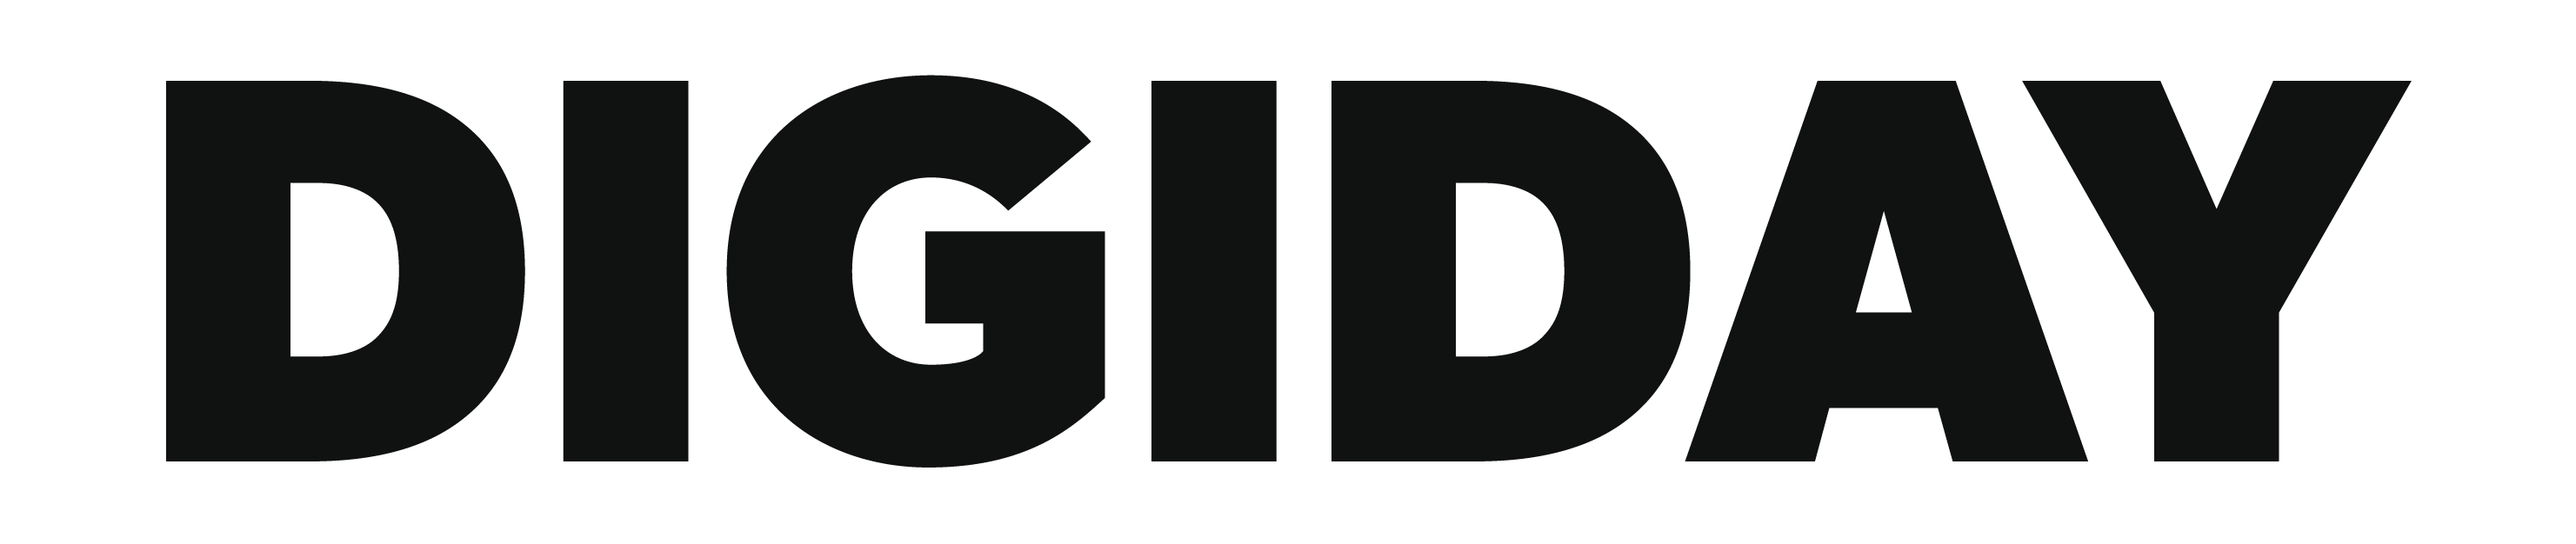 digiday logo 01